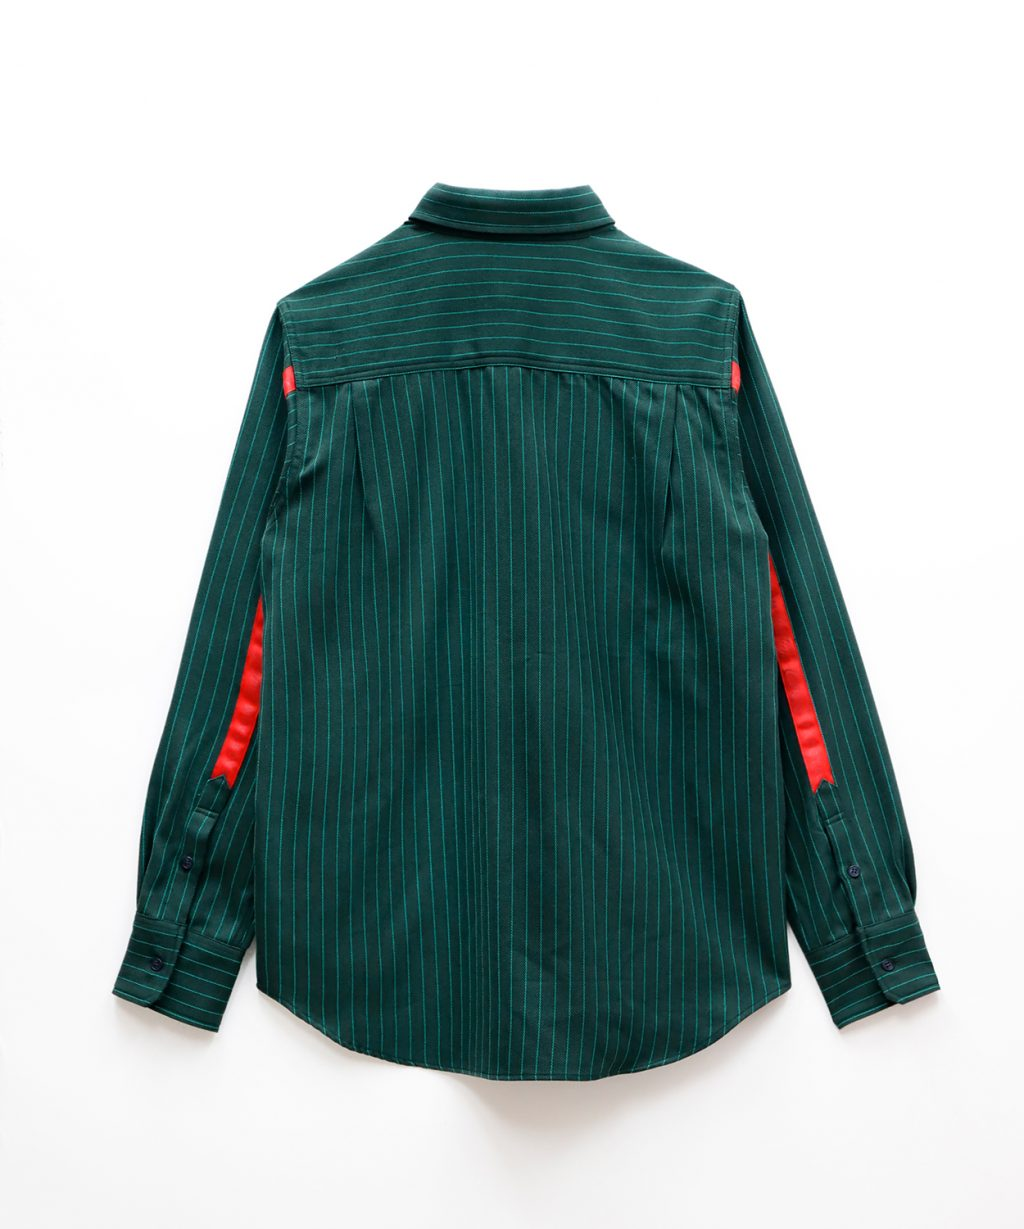 COCA-COLA-STRIPE-SHIRT-green2-1024x1229.jpg